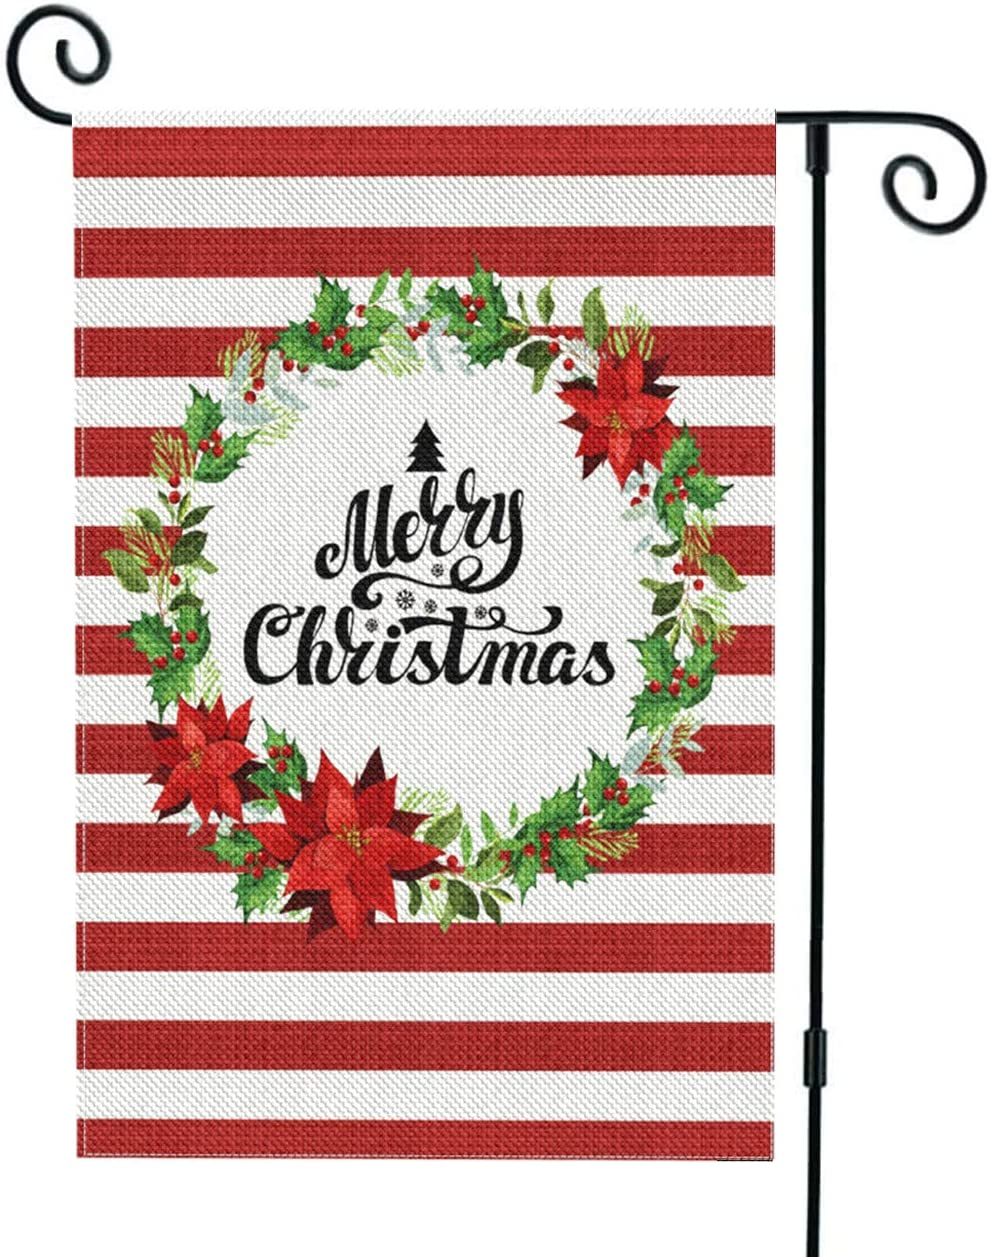 Rose Lake Merry Christmas Garden Flag Burlap Vertical Double Sided Christmas Yard Flag Winter Holiday Christmas Yard Outdoor Indoor Xmas Decoration 12.5x18Inch (Red Stripes)